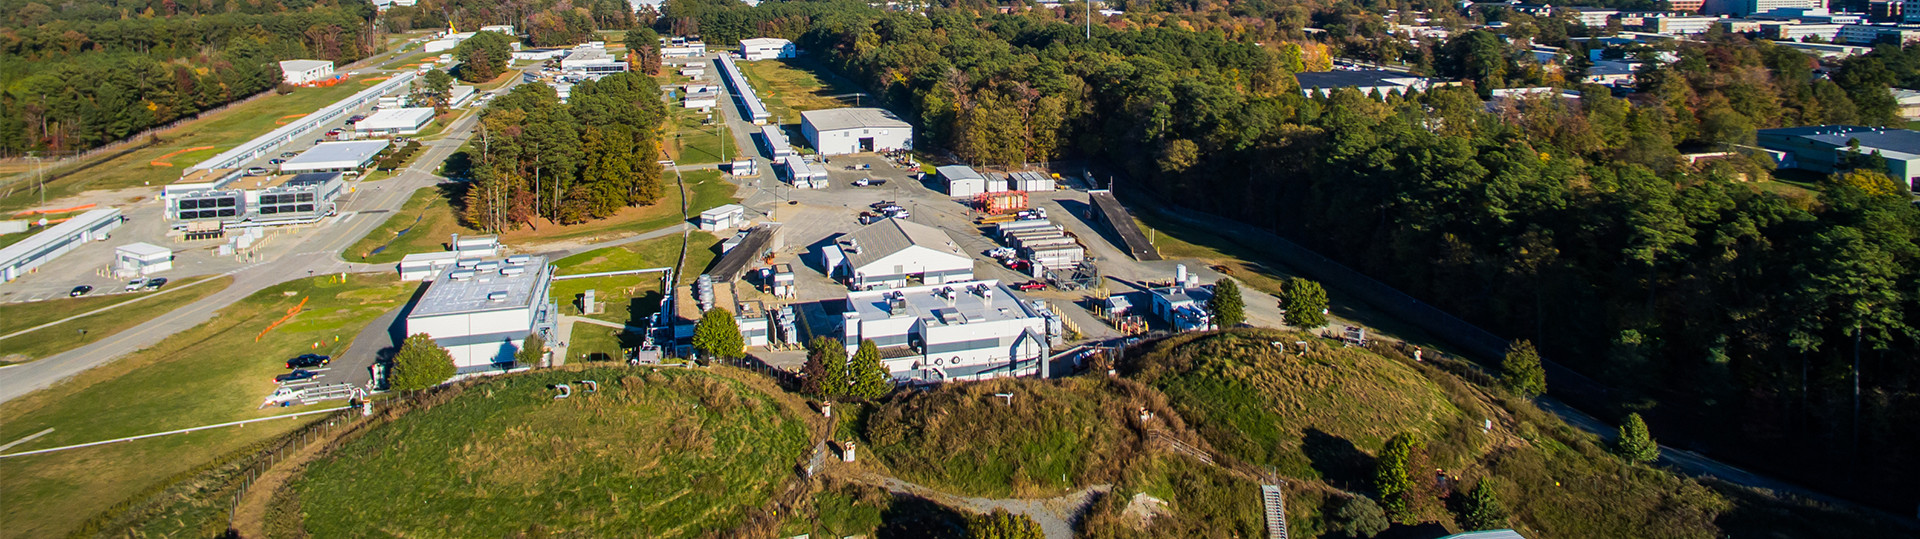 Aerial photo of the Continuous Electron Beam Accelerator Facility, showing the above-ground accelerator service buildings, which outline the accelerator's racetrack shape. The three round domes of the Experimental Halls A, B and C are in the foreground, and the Experimental Hall D complex is in the top left corner of the photo.